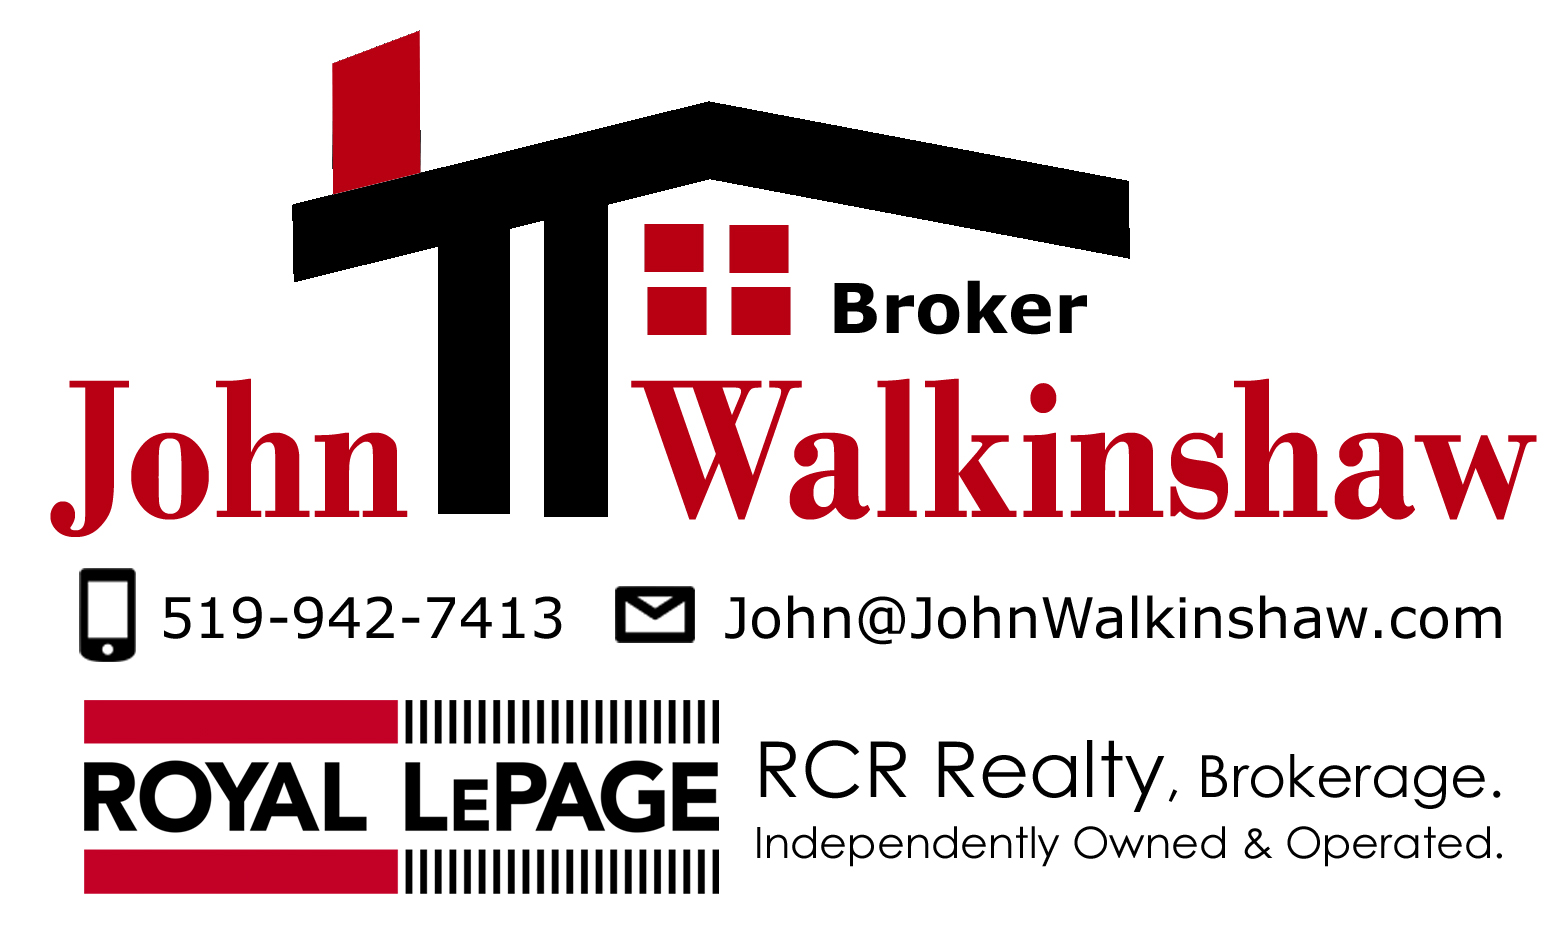 14-Walkinshaw+Real+Estate+Logo+with+RLP+logo+and+contact+info+copy.jpg